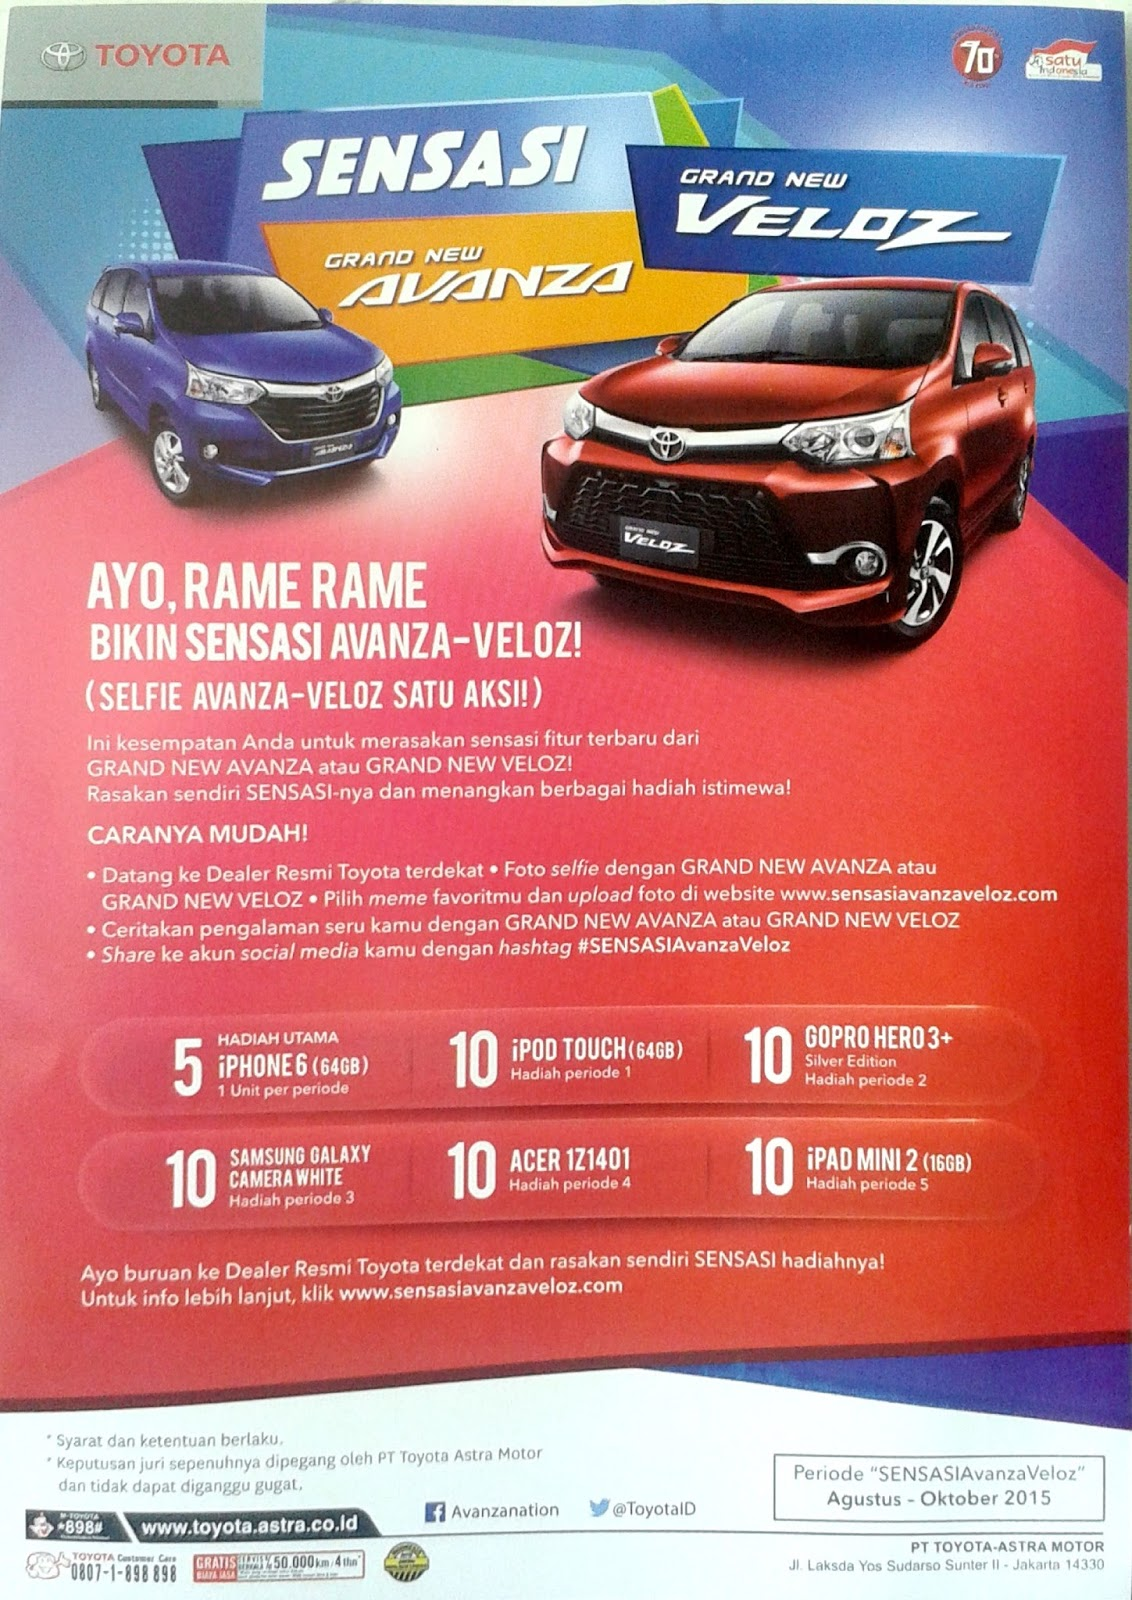 Harga Grand New Avanza Makassar Review Veloz 1.5 Sensasi And Toyota Auto 2000